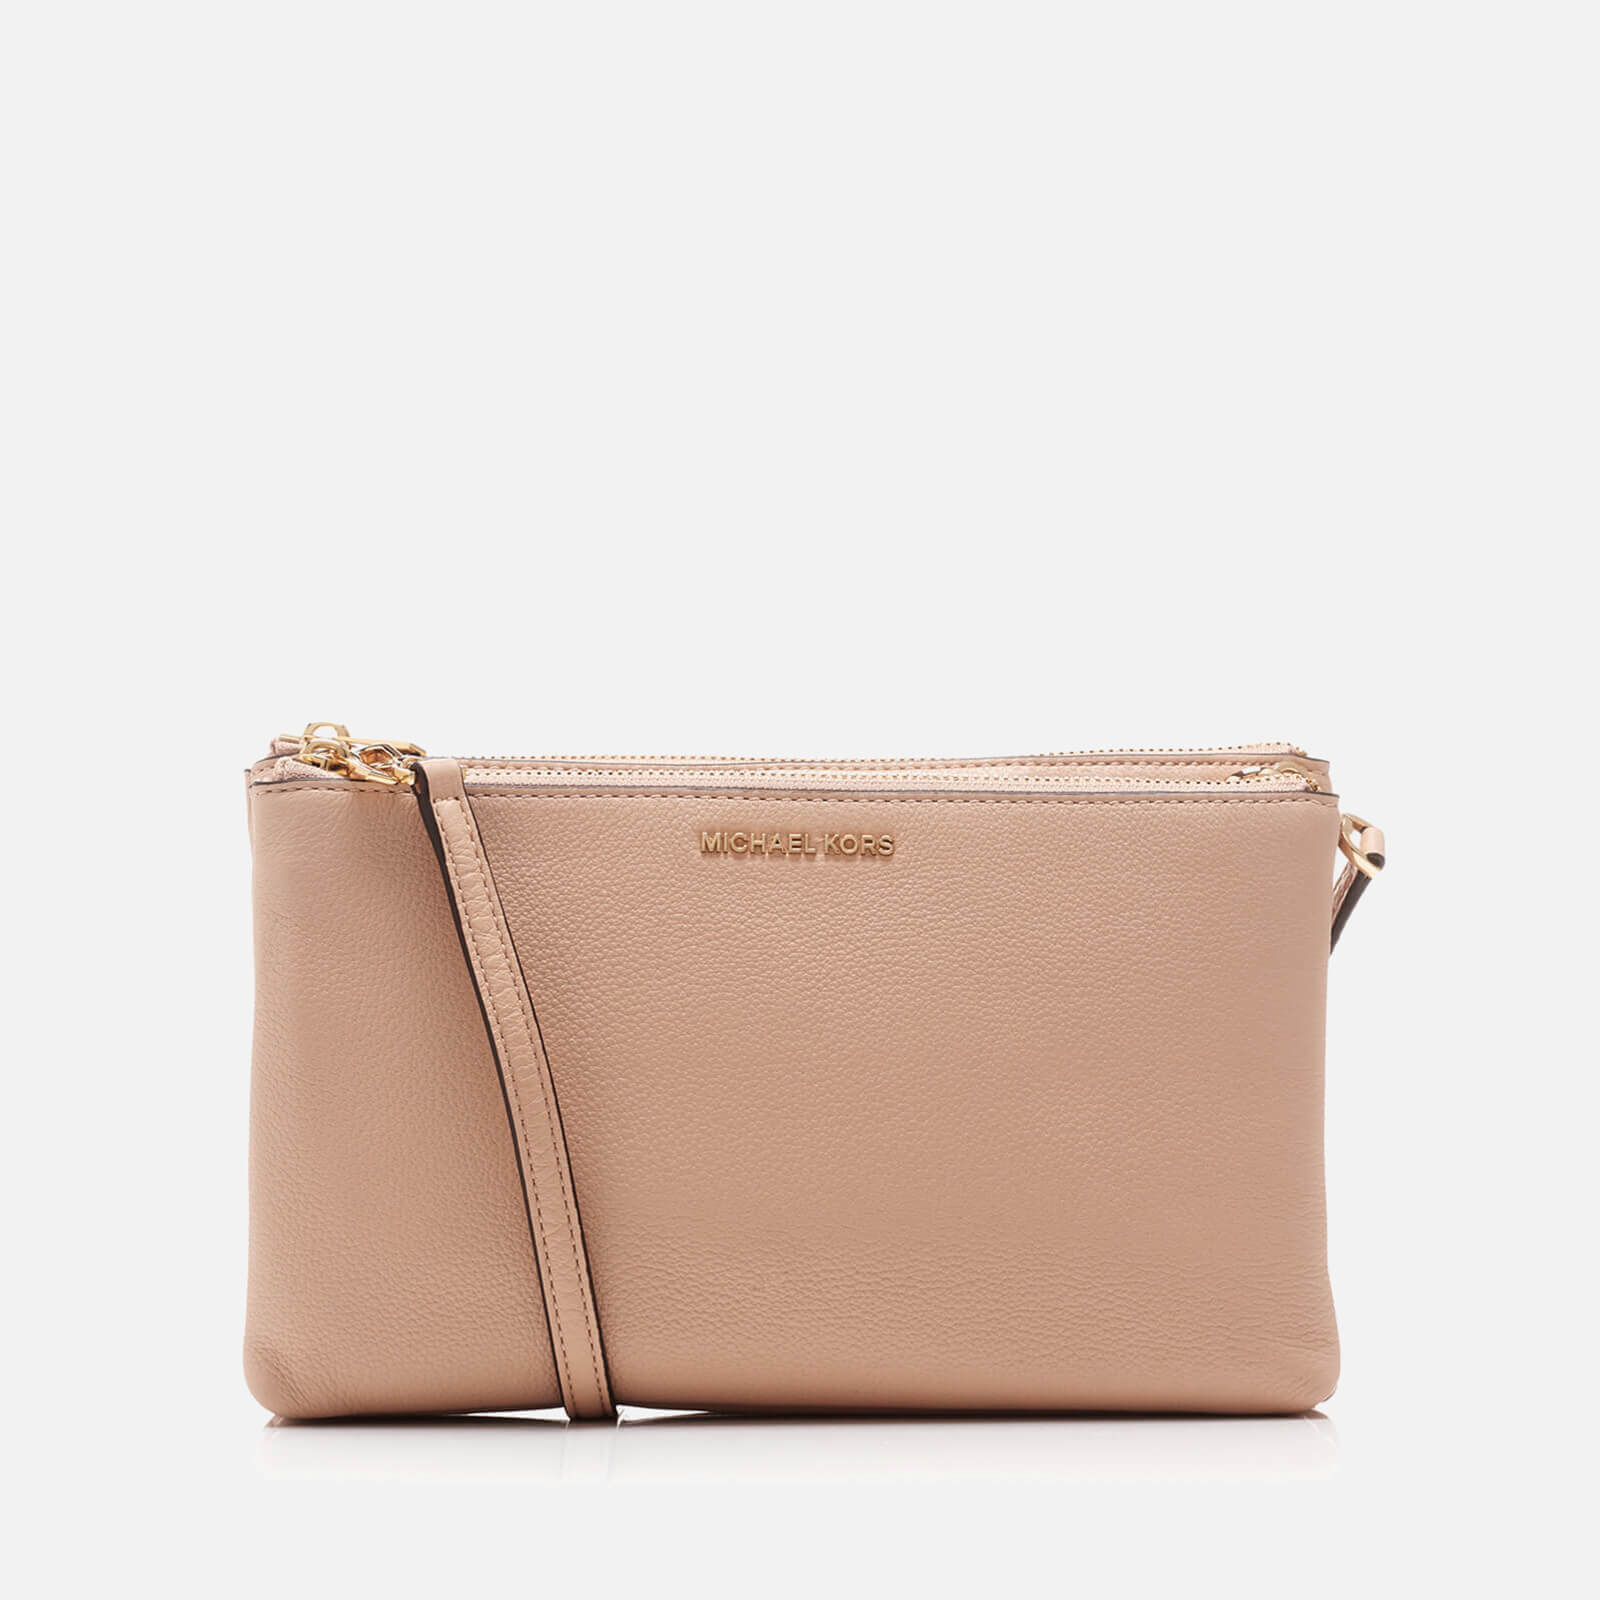 32426f27e677 MICHAEL MICHAEL KORS Women's Adele Double Gusset Cross Body Bag - Oyster -  Free UK Delivery over £50